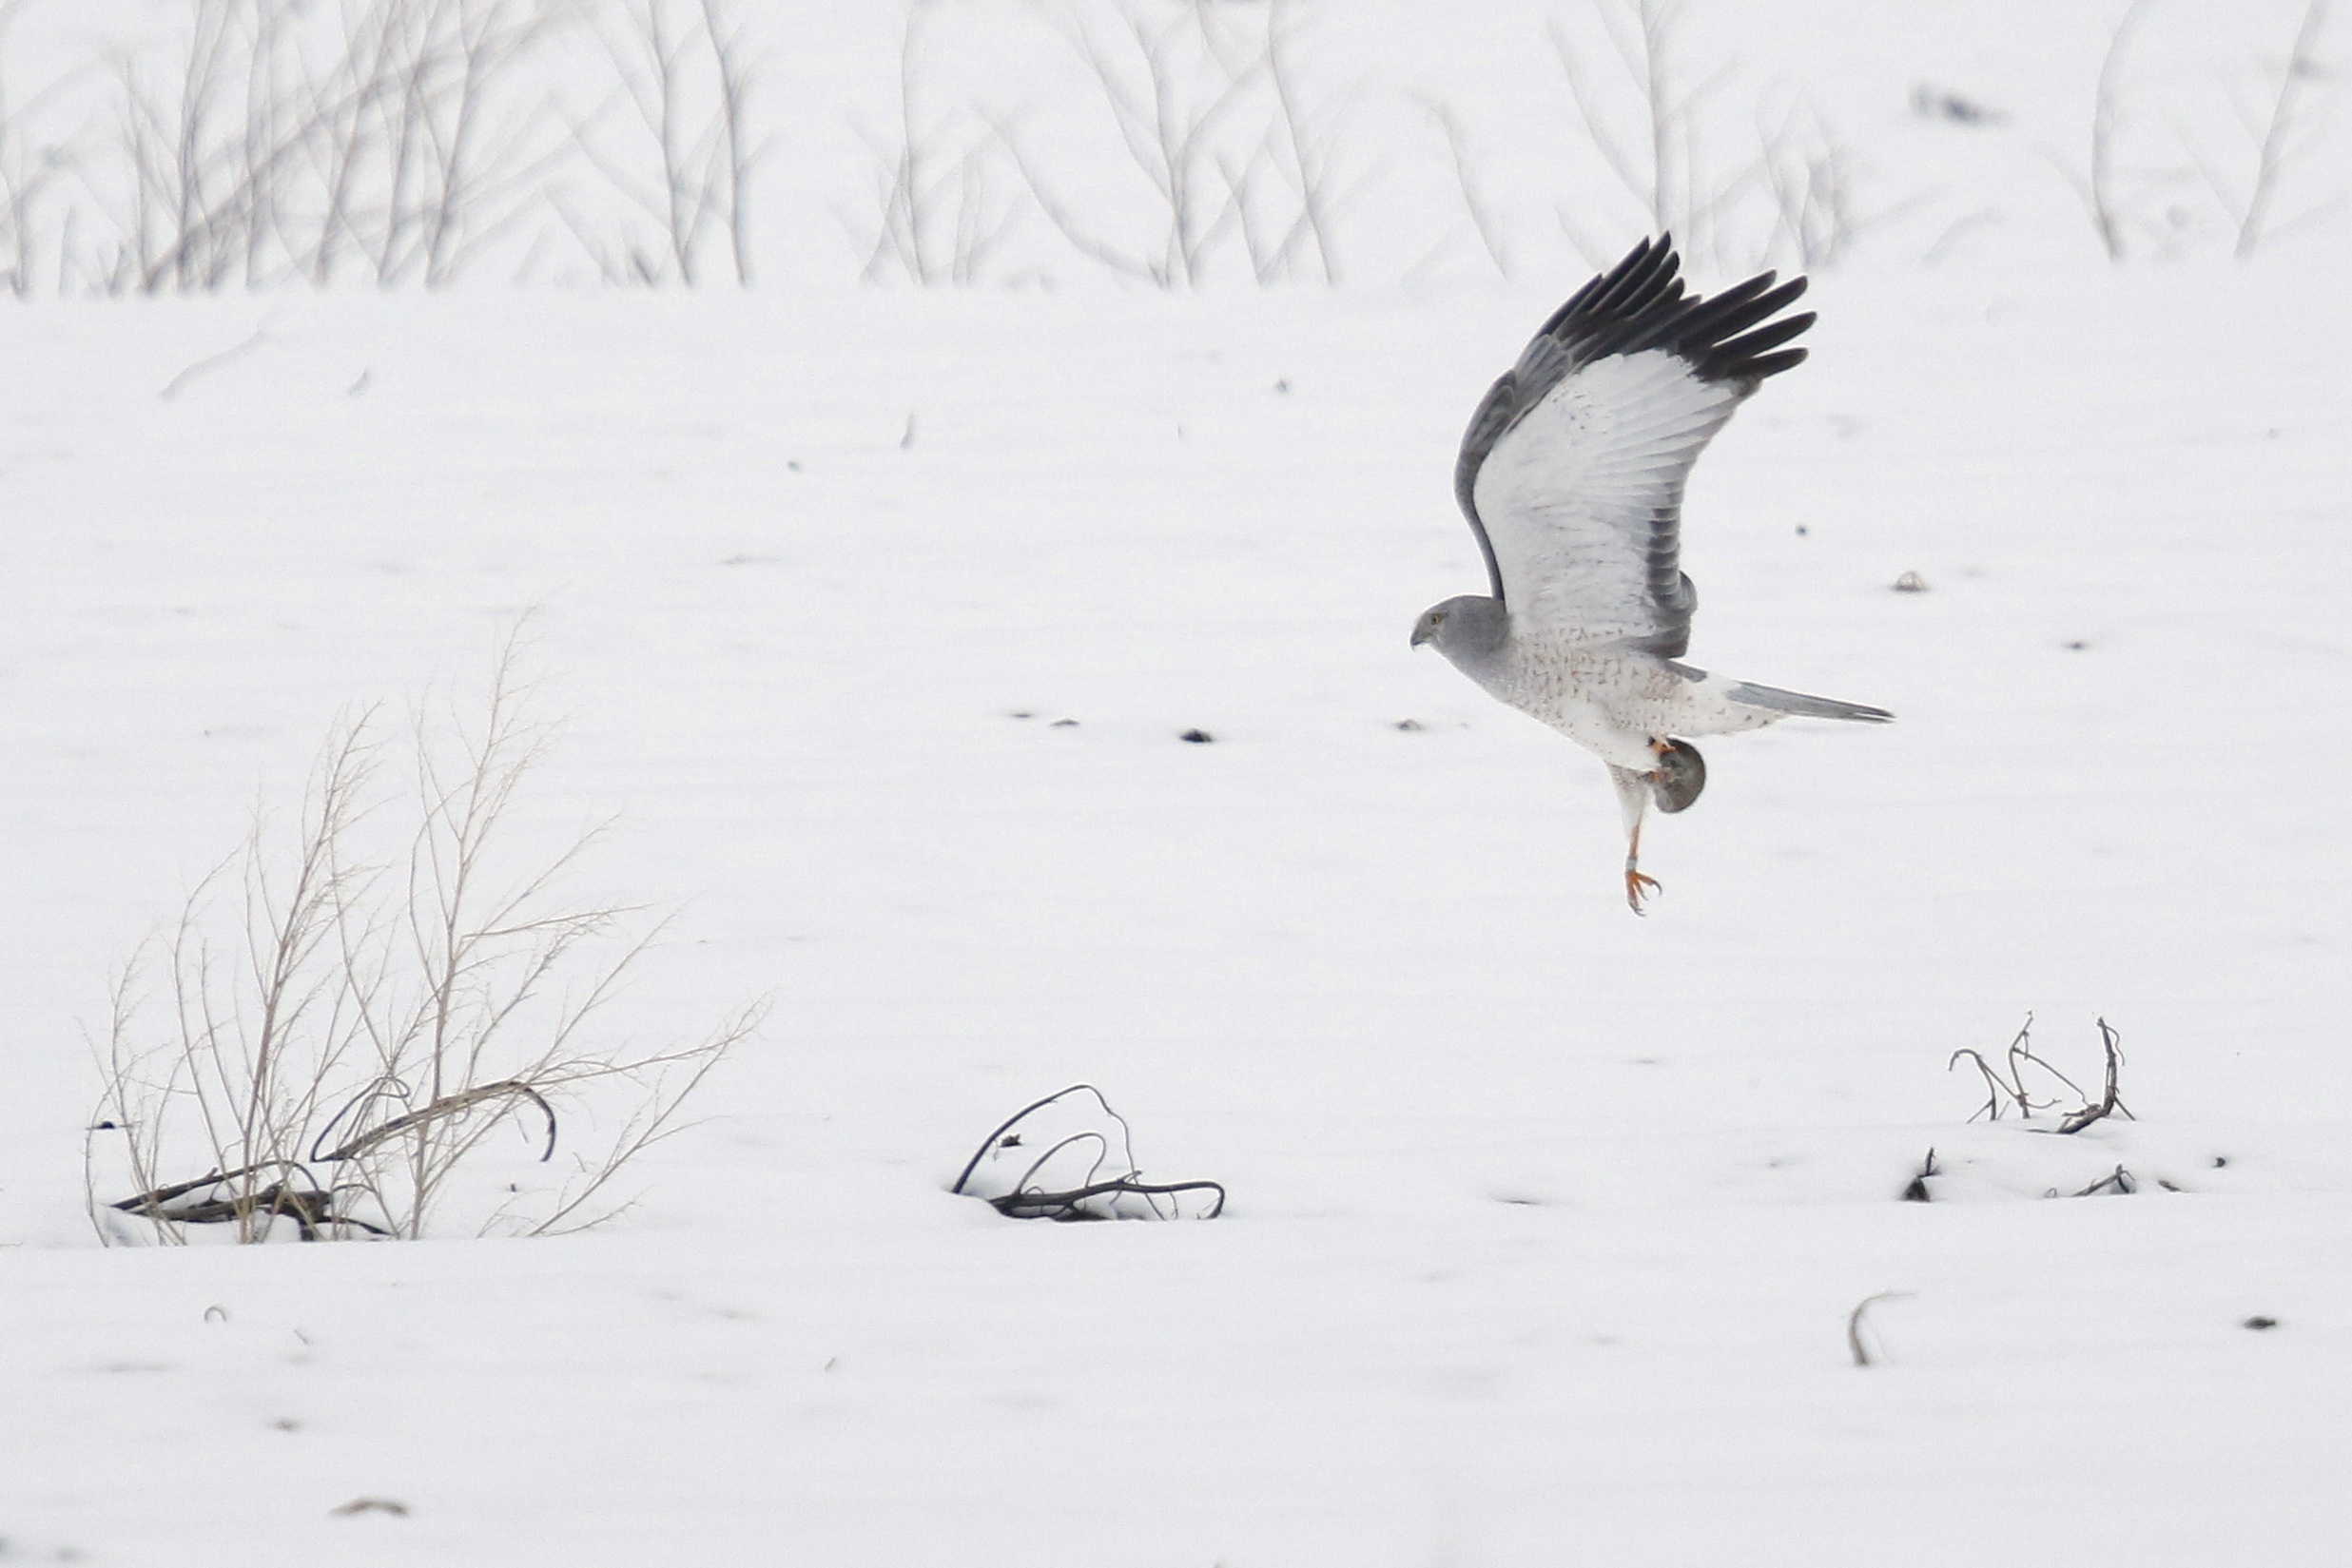 ~Not a great photo, but I included it because the bird not only has prey but is tagged. Northern Harrier on Missionland Road, 3/21/15.~